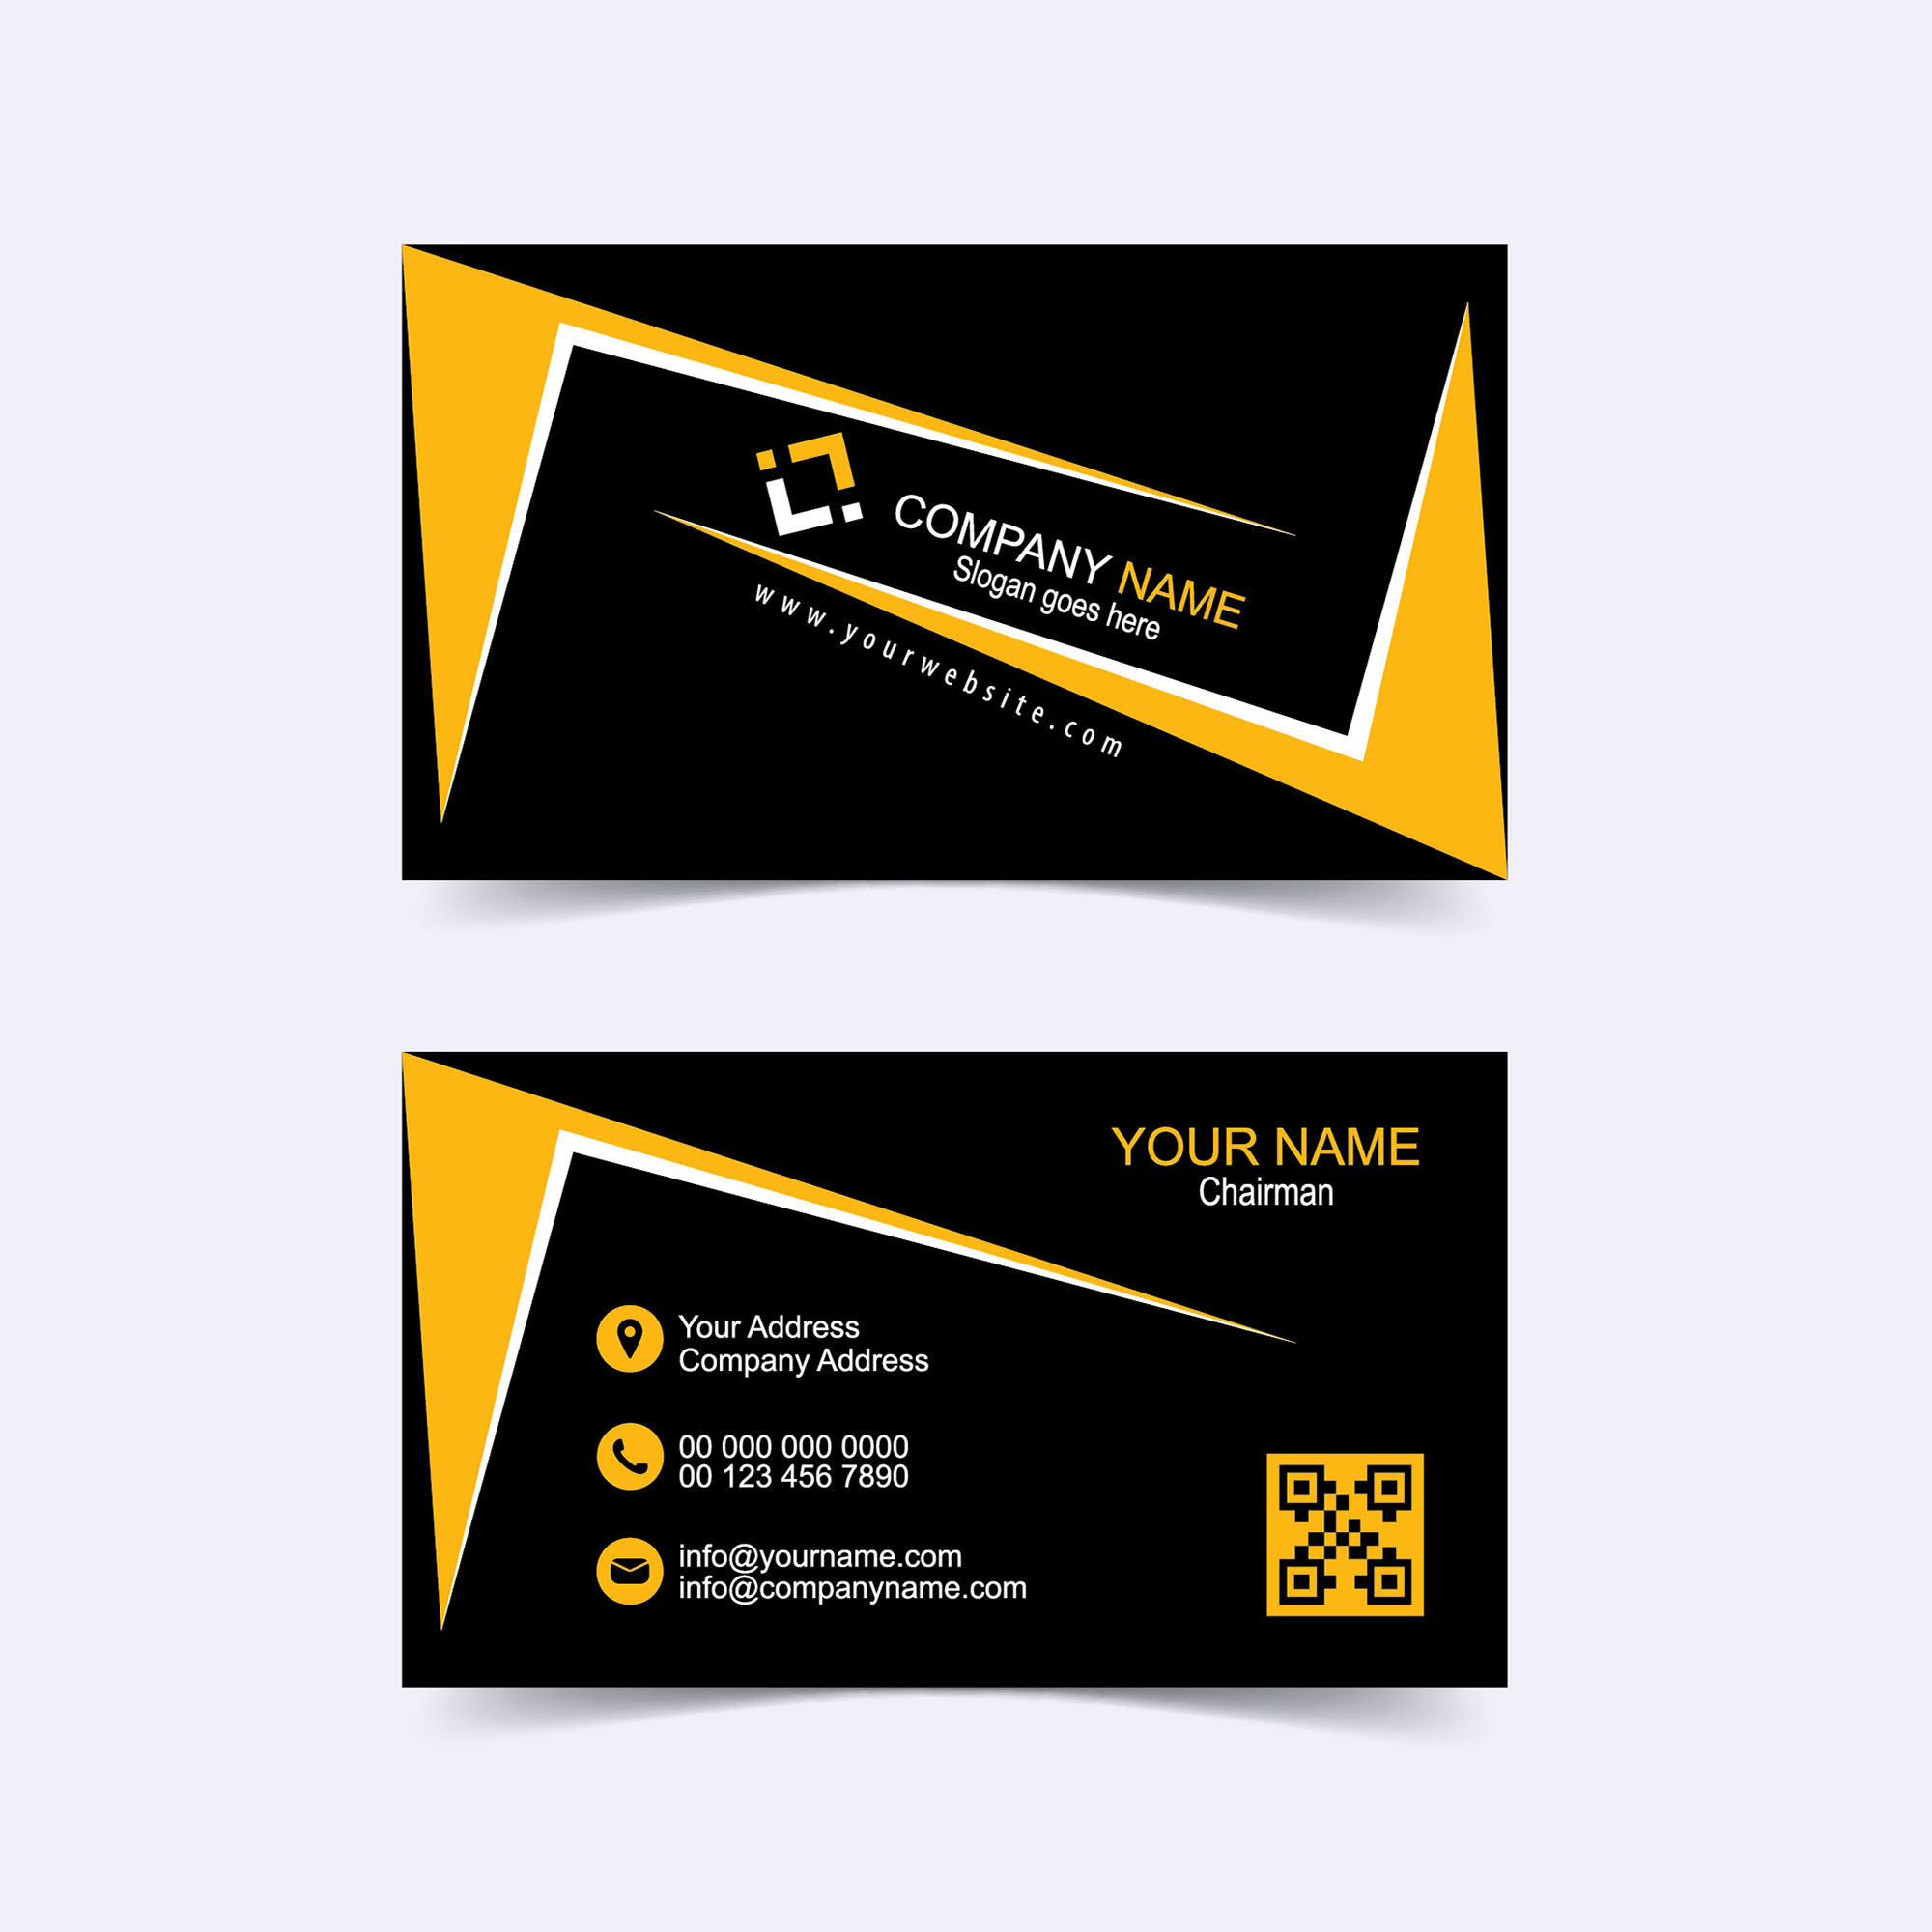 Modern business card template vector free download wisxi business card business cards business card design business card template design templates corporate business card design accmission Images